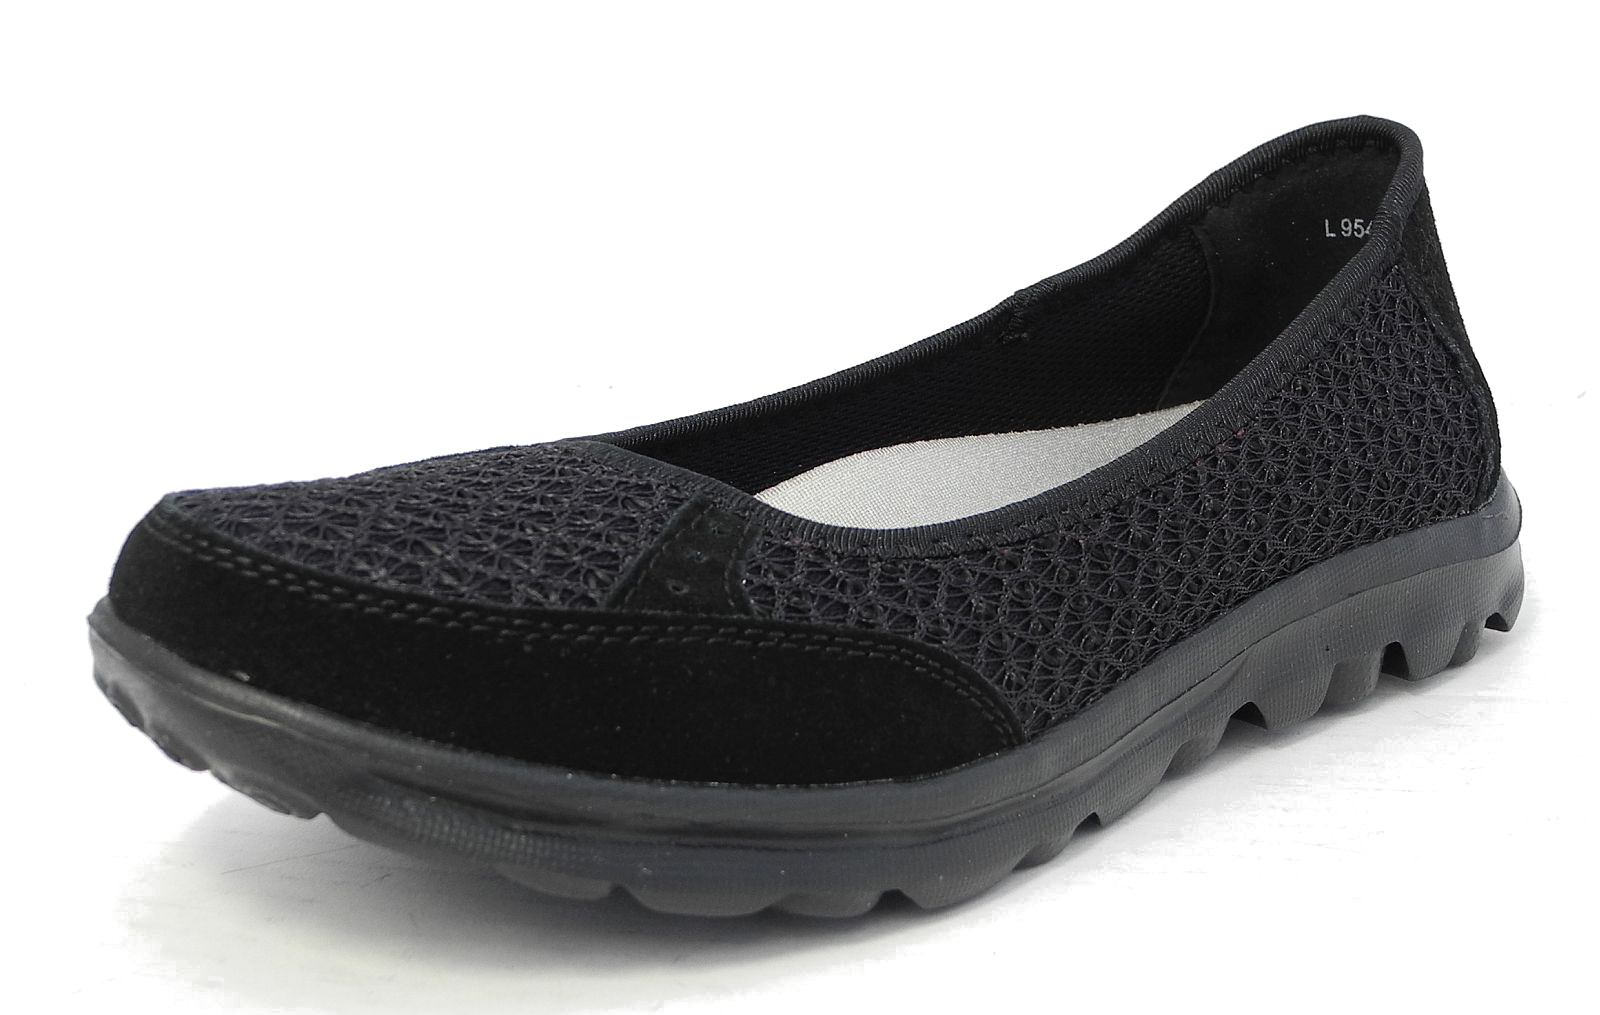 Black Flat Work Shoes H And M